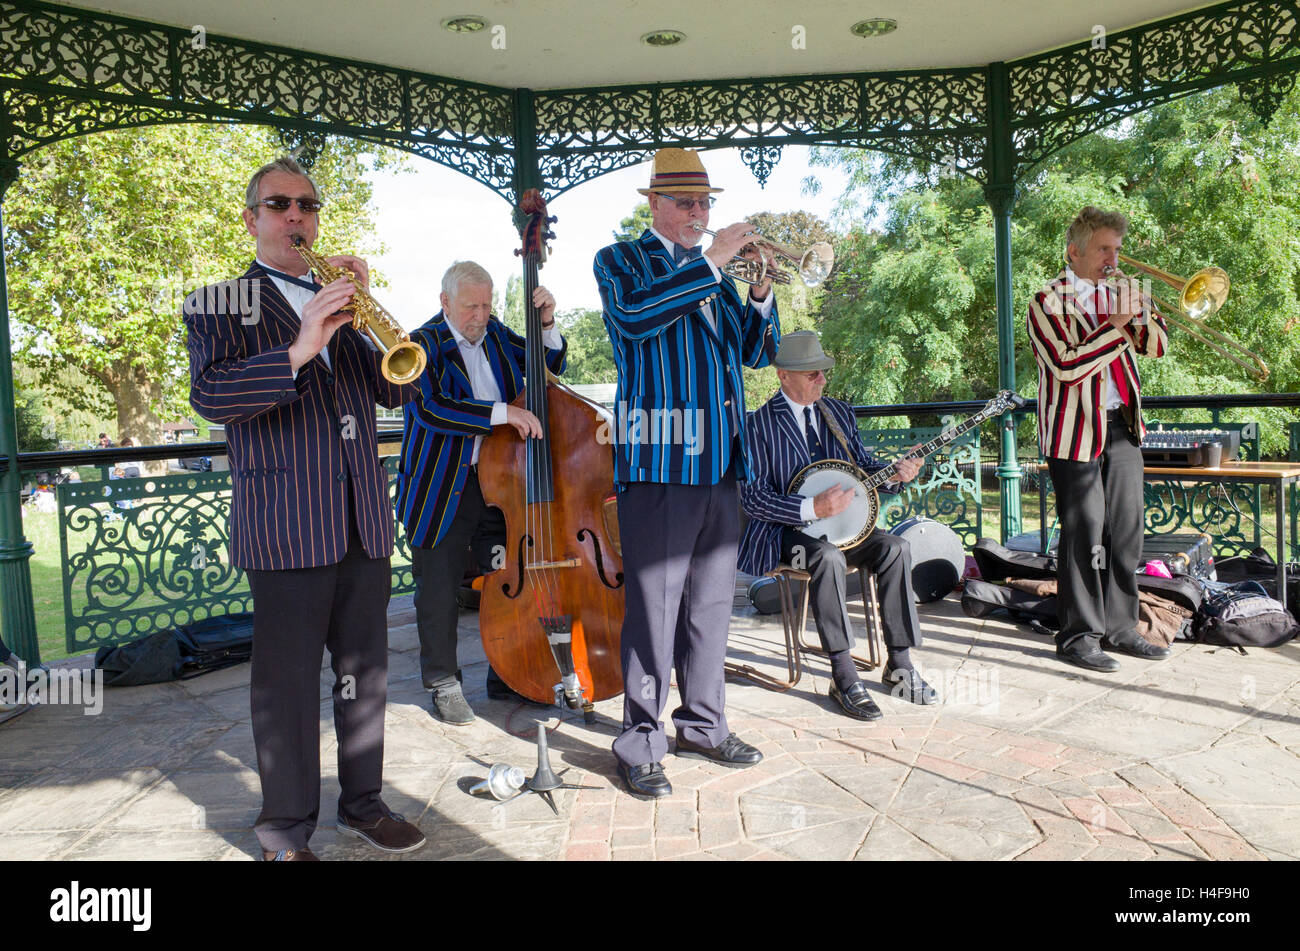 Jazz musicians playing in the Parliament Hill bandstand on Hampstead Heath, London, England, UK - Stock Image